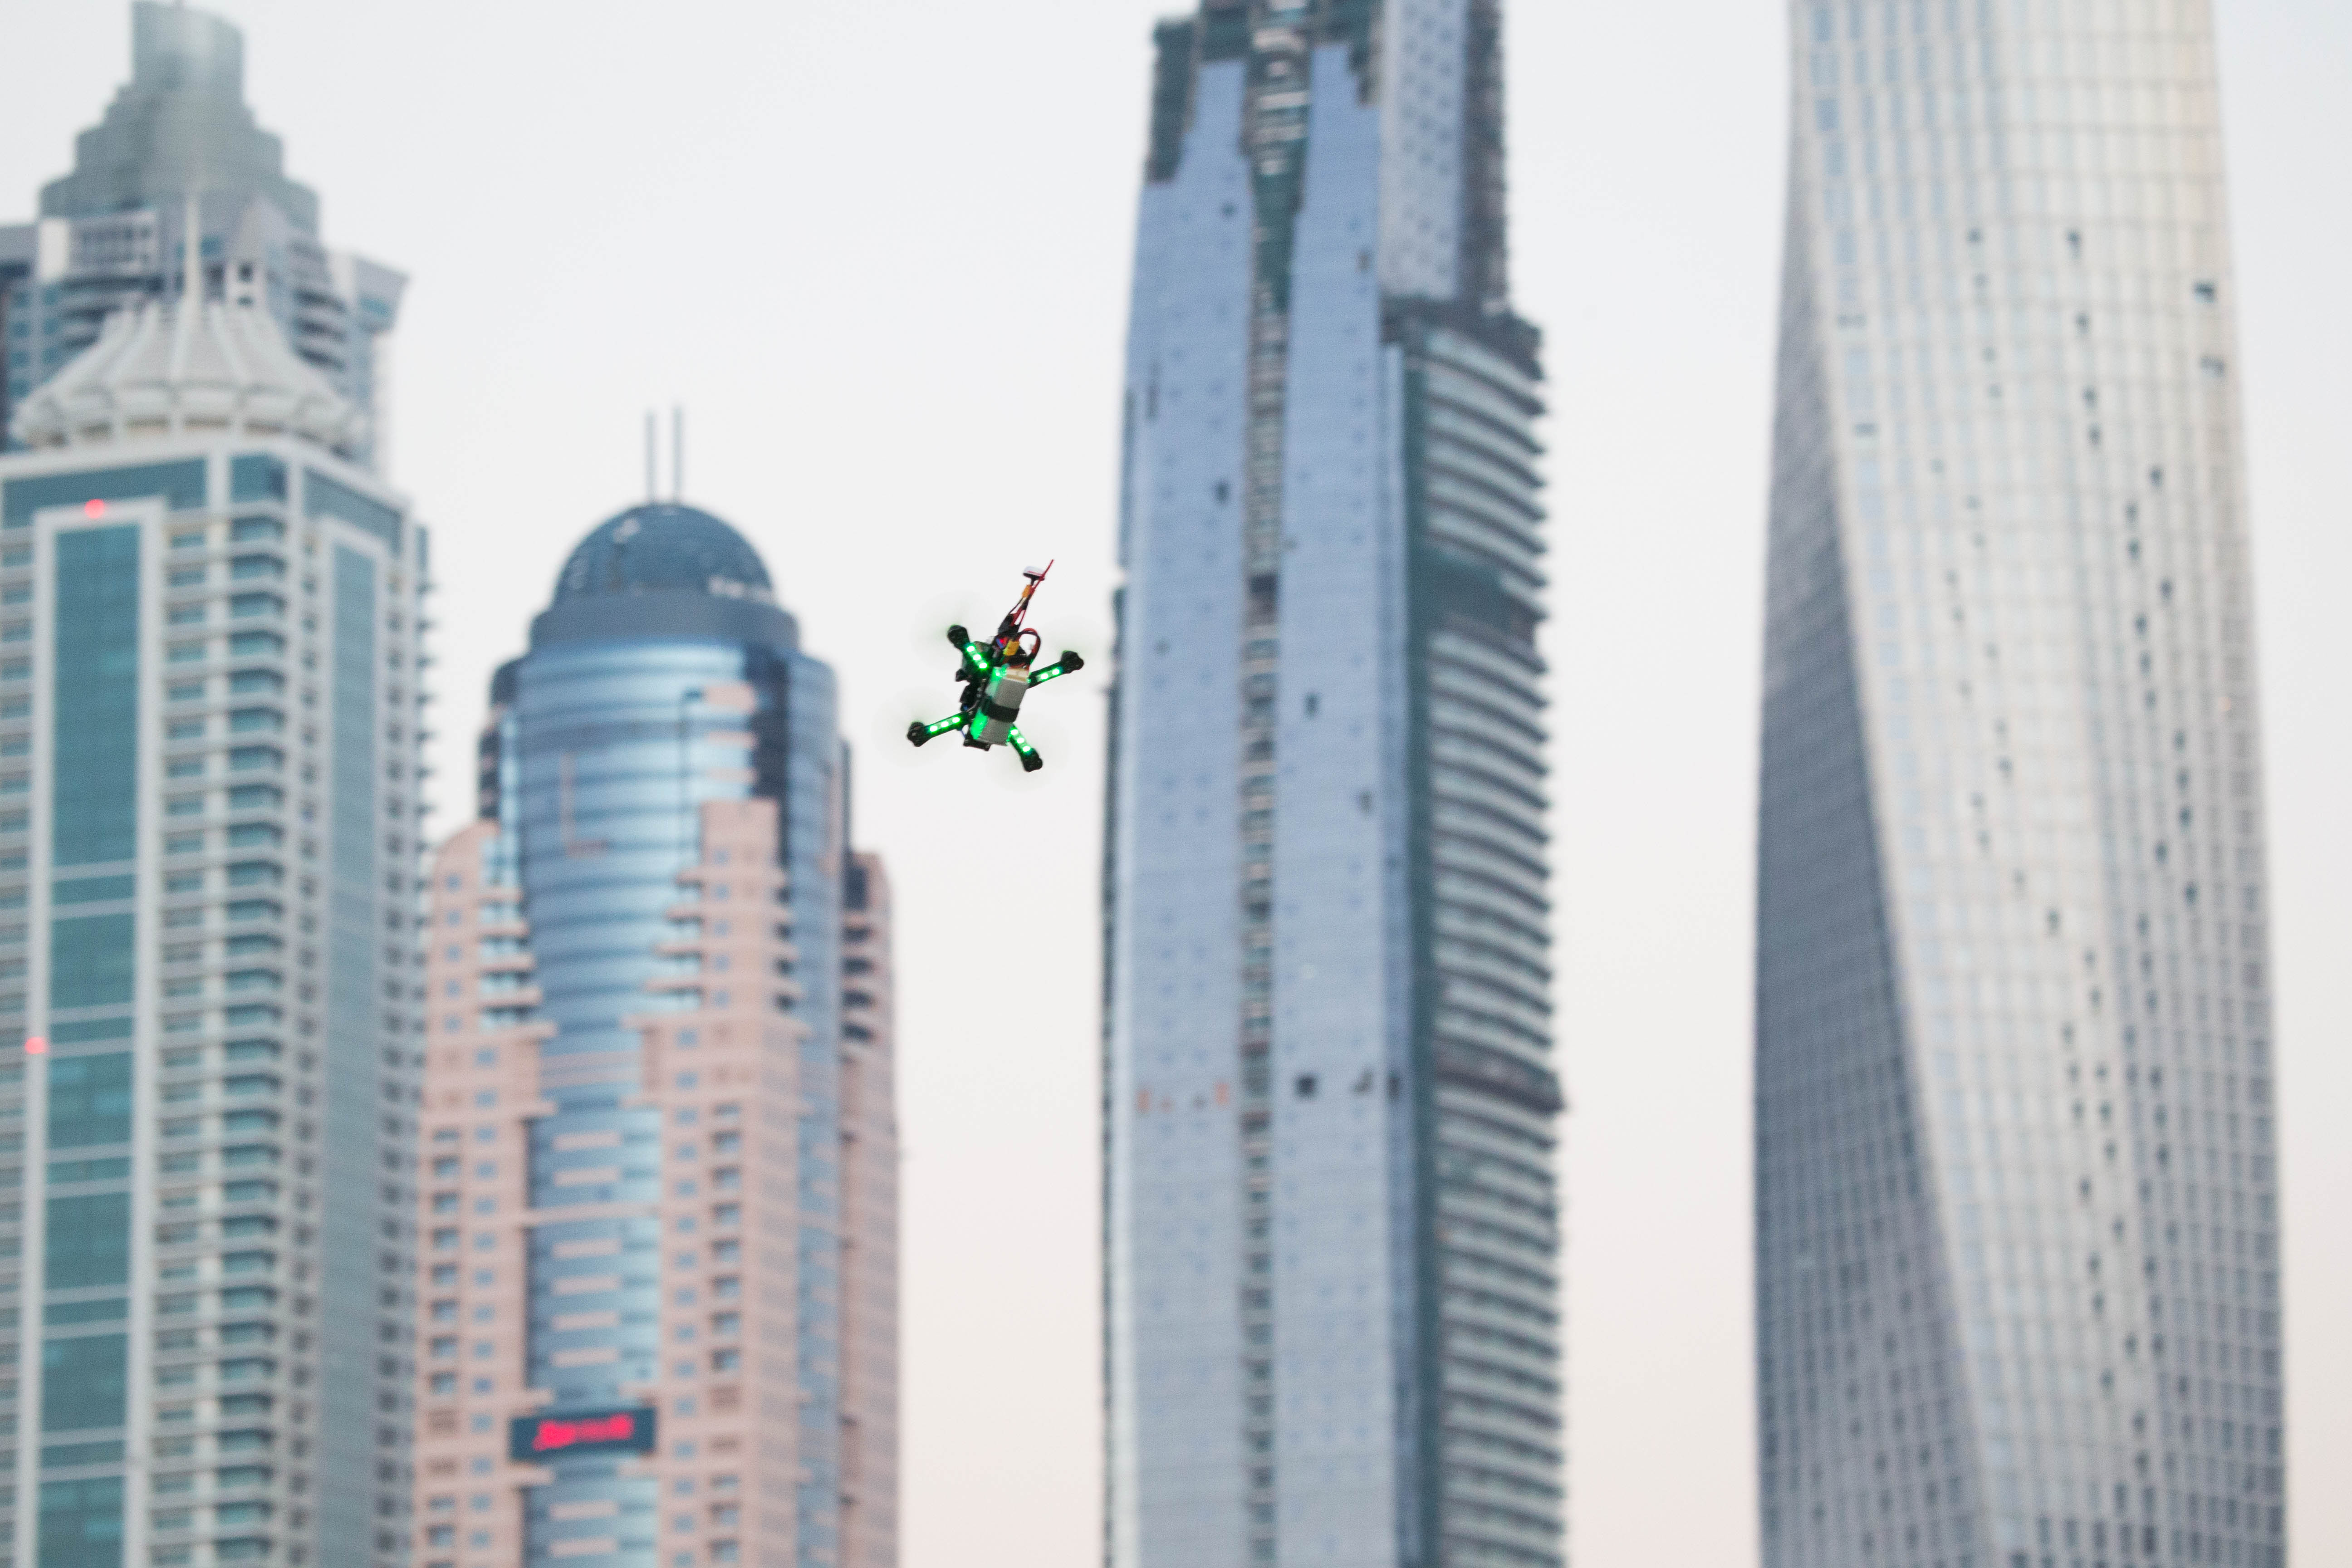 A drone flies around the track in front of the Dubai's Marina skyline during the World Drone Prix drone racing championship in Dubai, United Arab Emirates, on Saturday, March 12, 2016. Teams compete for the global champion purse of total prizes of $1 million by navigating drones at over 100kms an hour around a track which features multiple pathways, kinetic and static obstacles designed to push pilots to their limits.